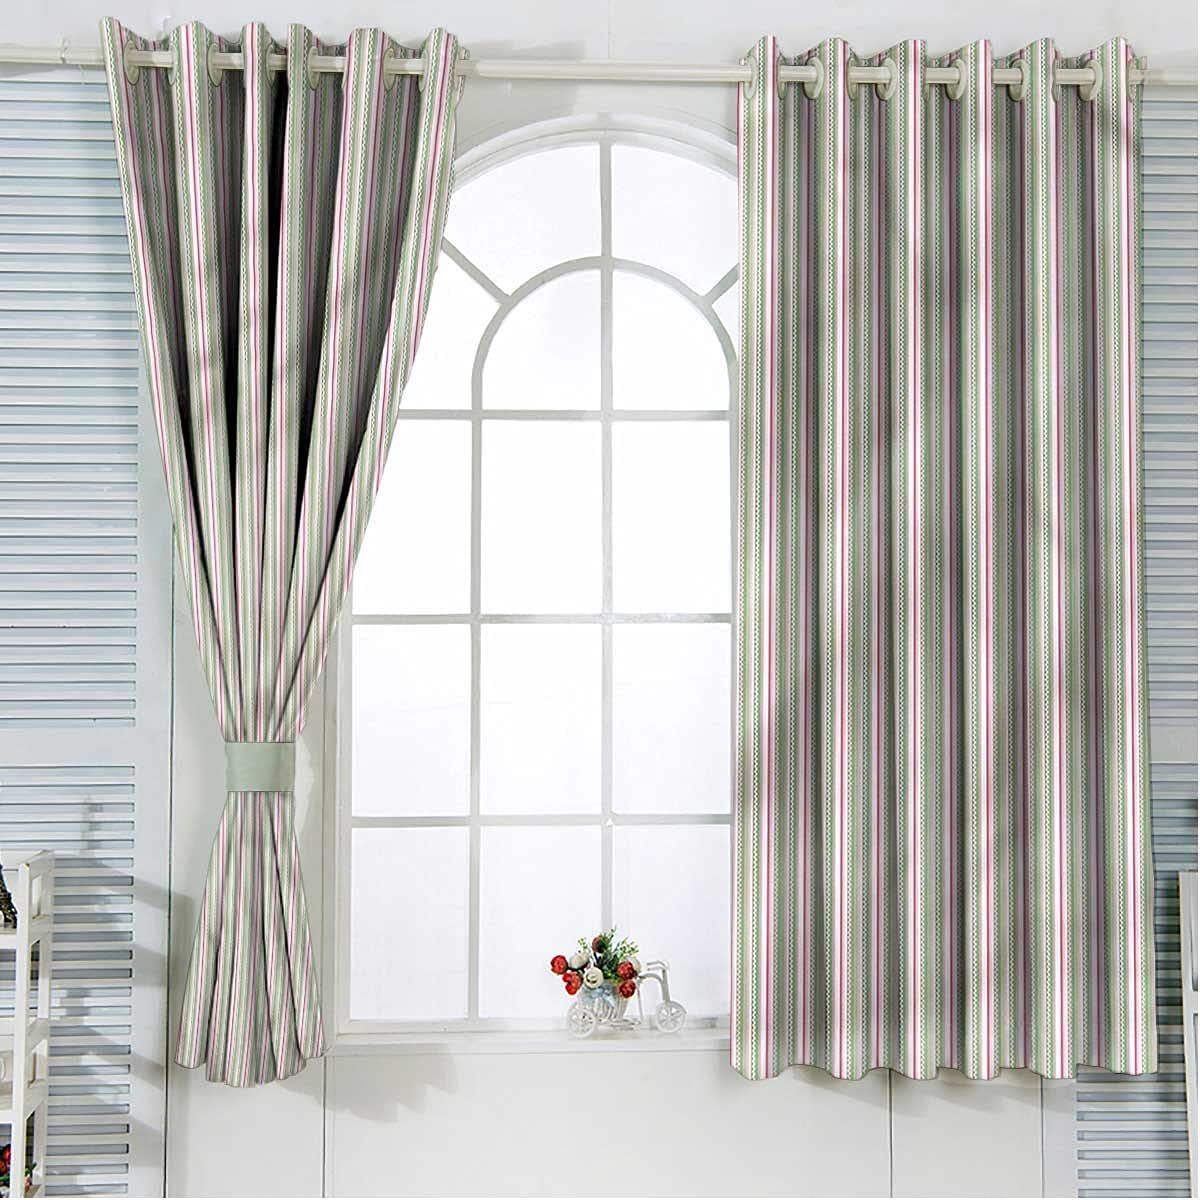 Easter Insulated Popular trust overseas Curtains 96 Inch Length Zig Colorful Stripes Za